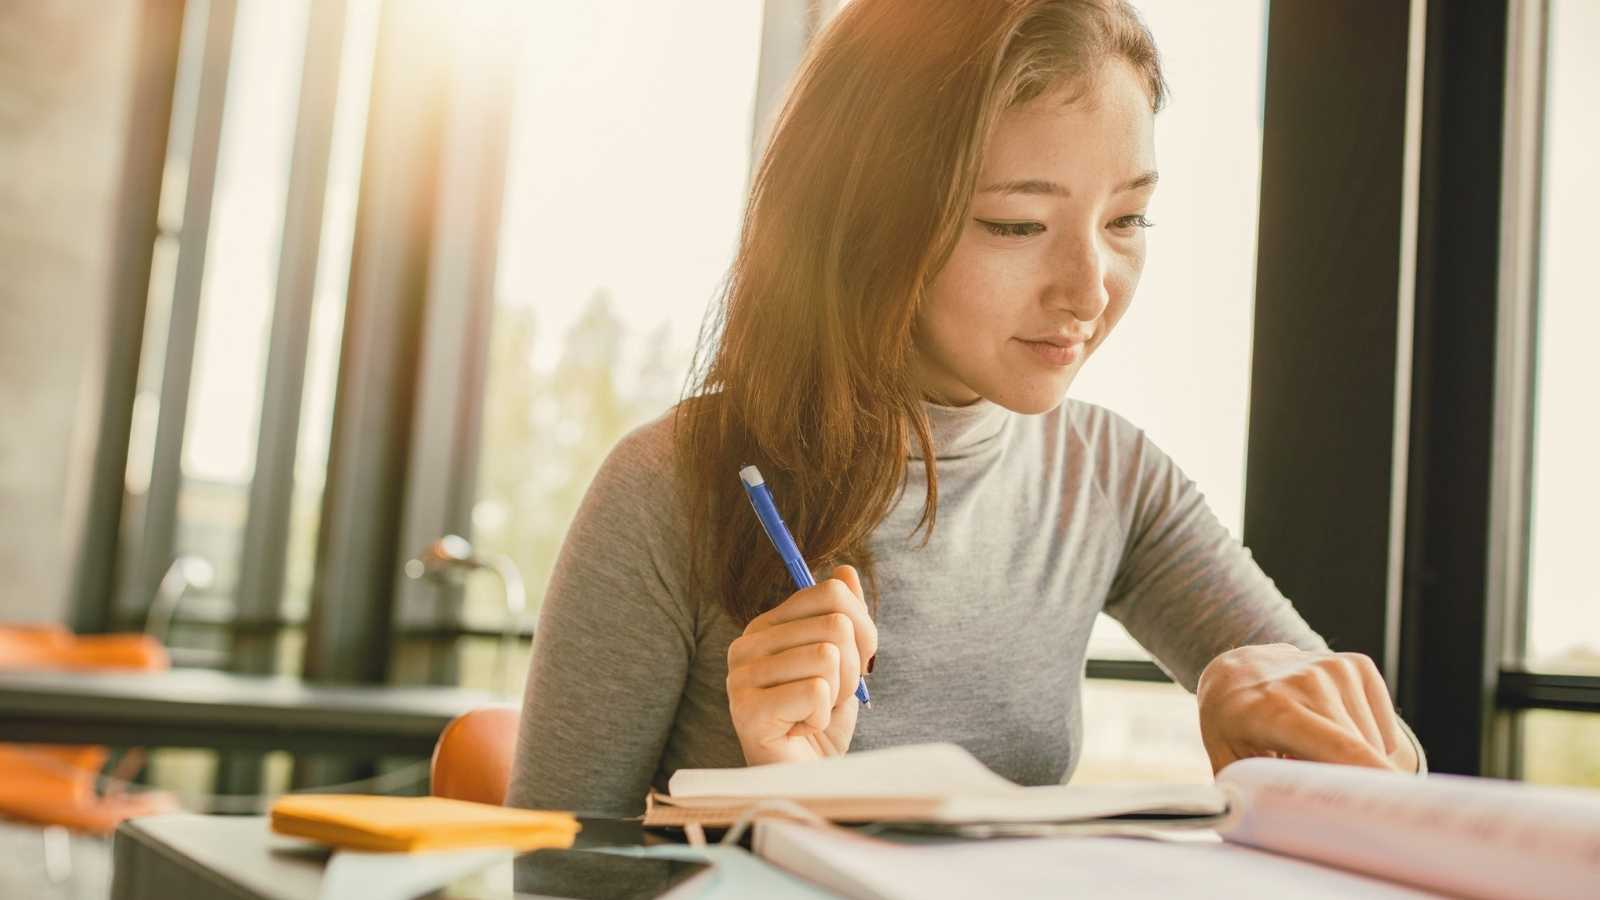 12 Dos and Don'ts for a Successful NCLEX Exam